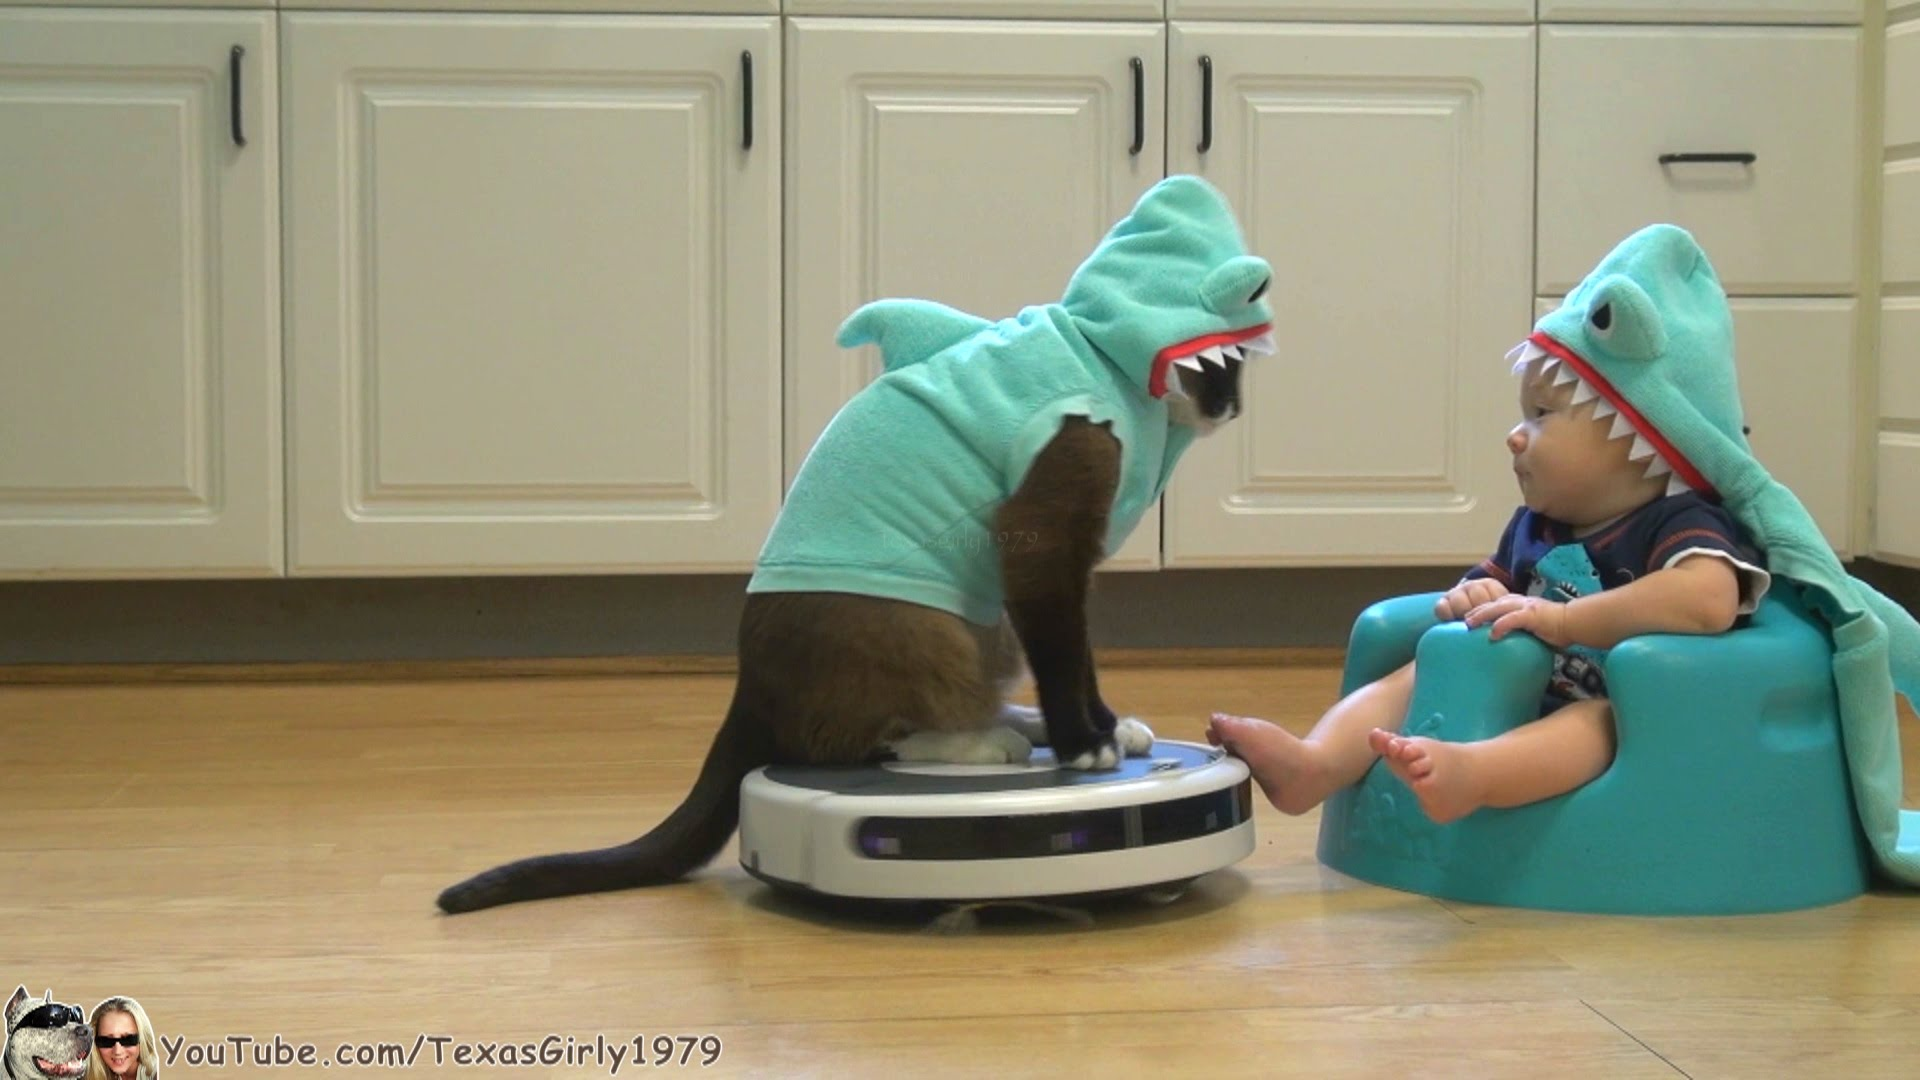 Shop Chewy for low prices on dog and cat Halloween Costumes. Choose between classic costumes, TV and movie costumes, food costumes, superhero costumes and more that all range in size from extra small toy breeds up to extra large breeds. *FREE* shipping on .